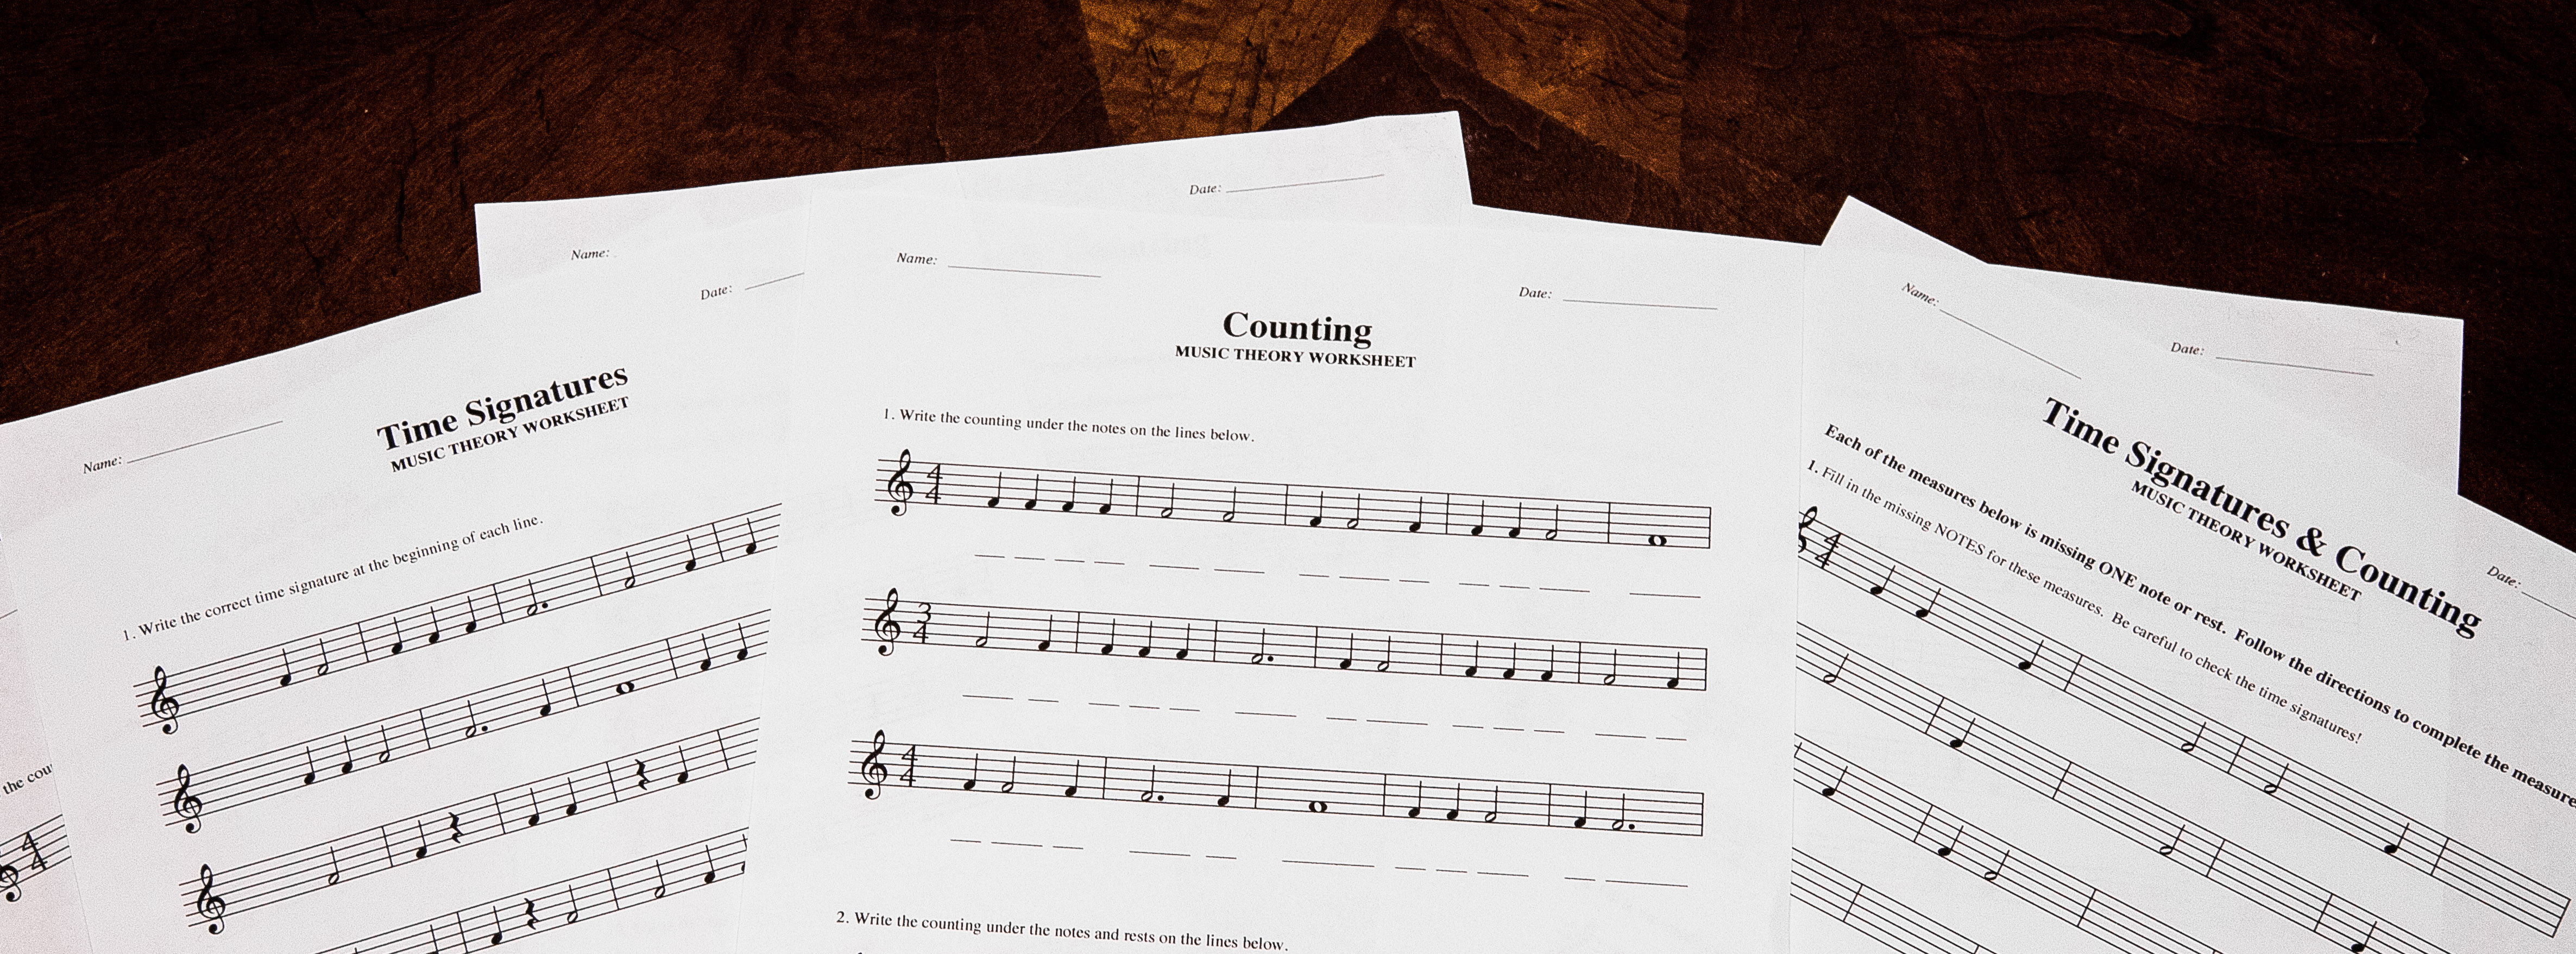 Time Signatures & Counting: Free Printable Theory Worksheets – Lacie | Free Printable Music Theory Worksheets